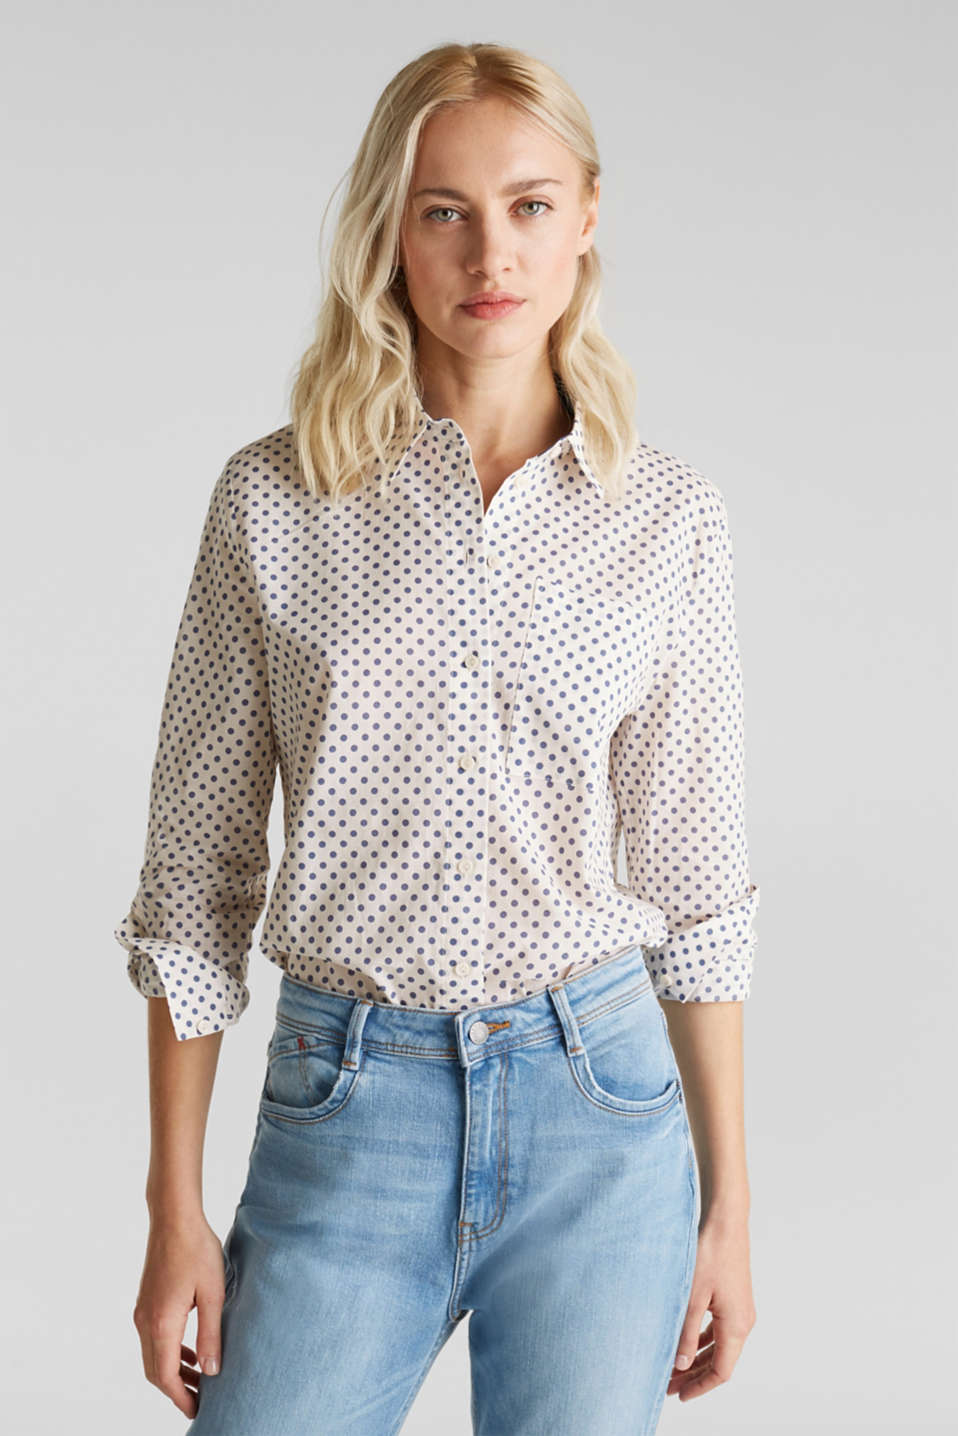 Esprit - Blouse with a high-low hem, 100% cotton